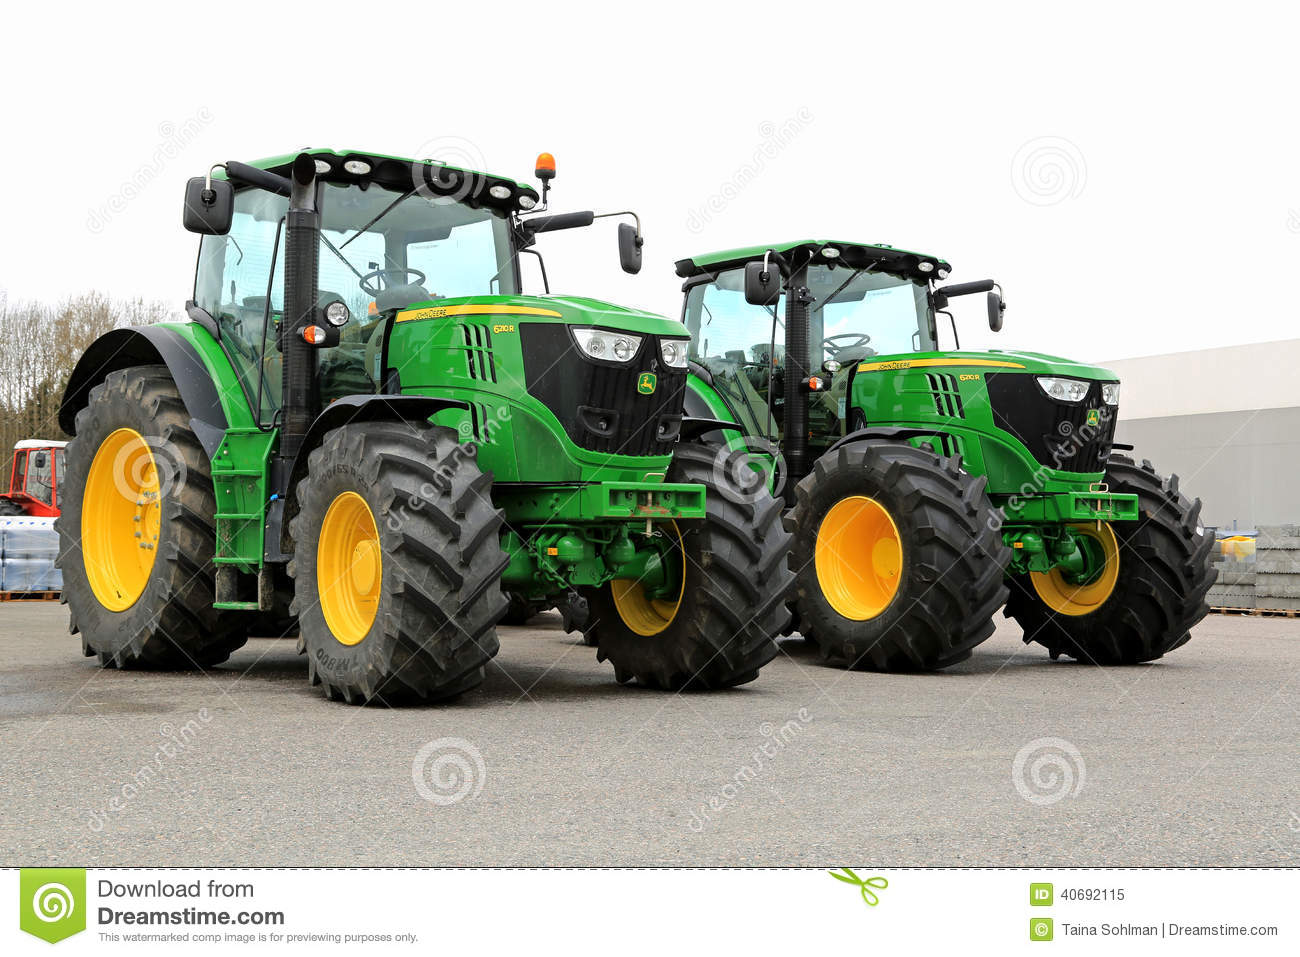 Two John Deere 6210R Agricultural Tractors on a Yard.